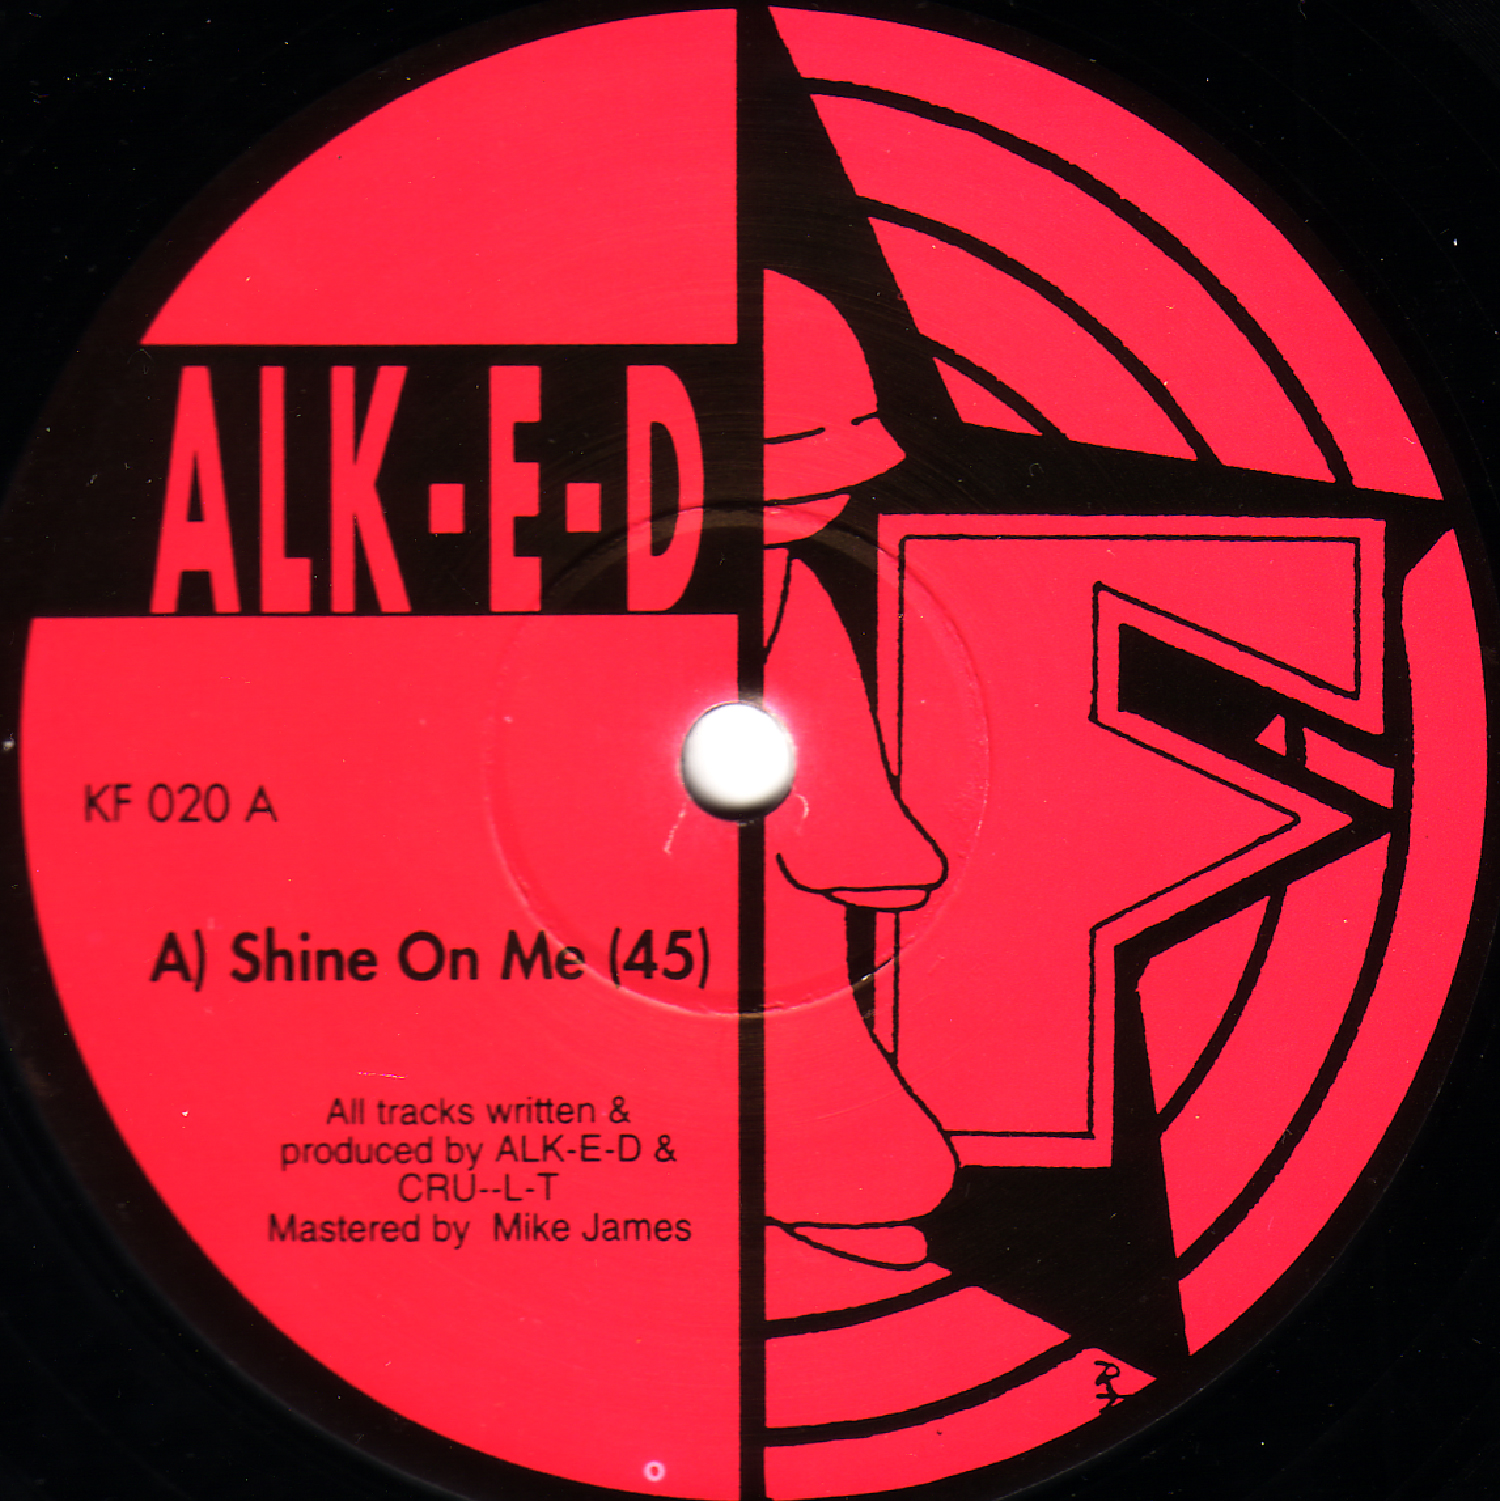 [KF020] Alk-e-d - Shining Bright EP (Digital Only)